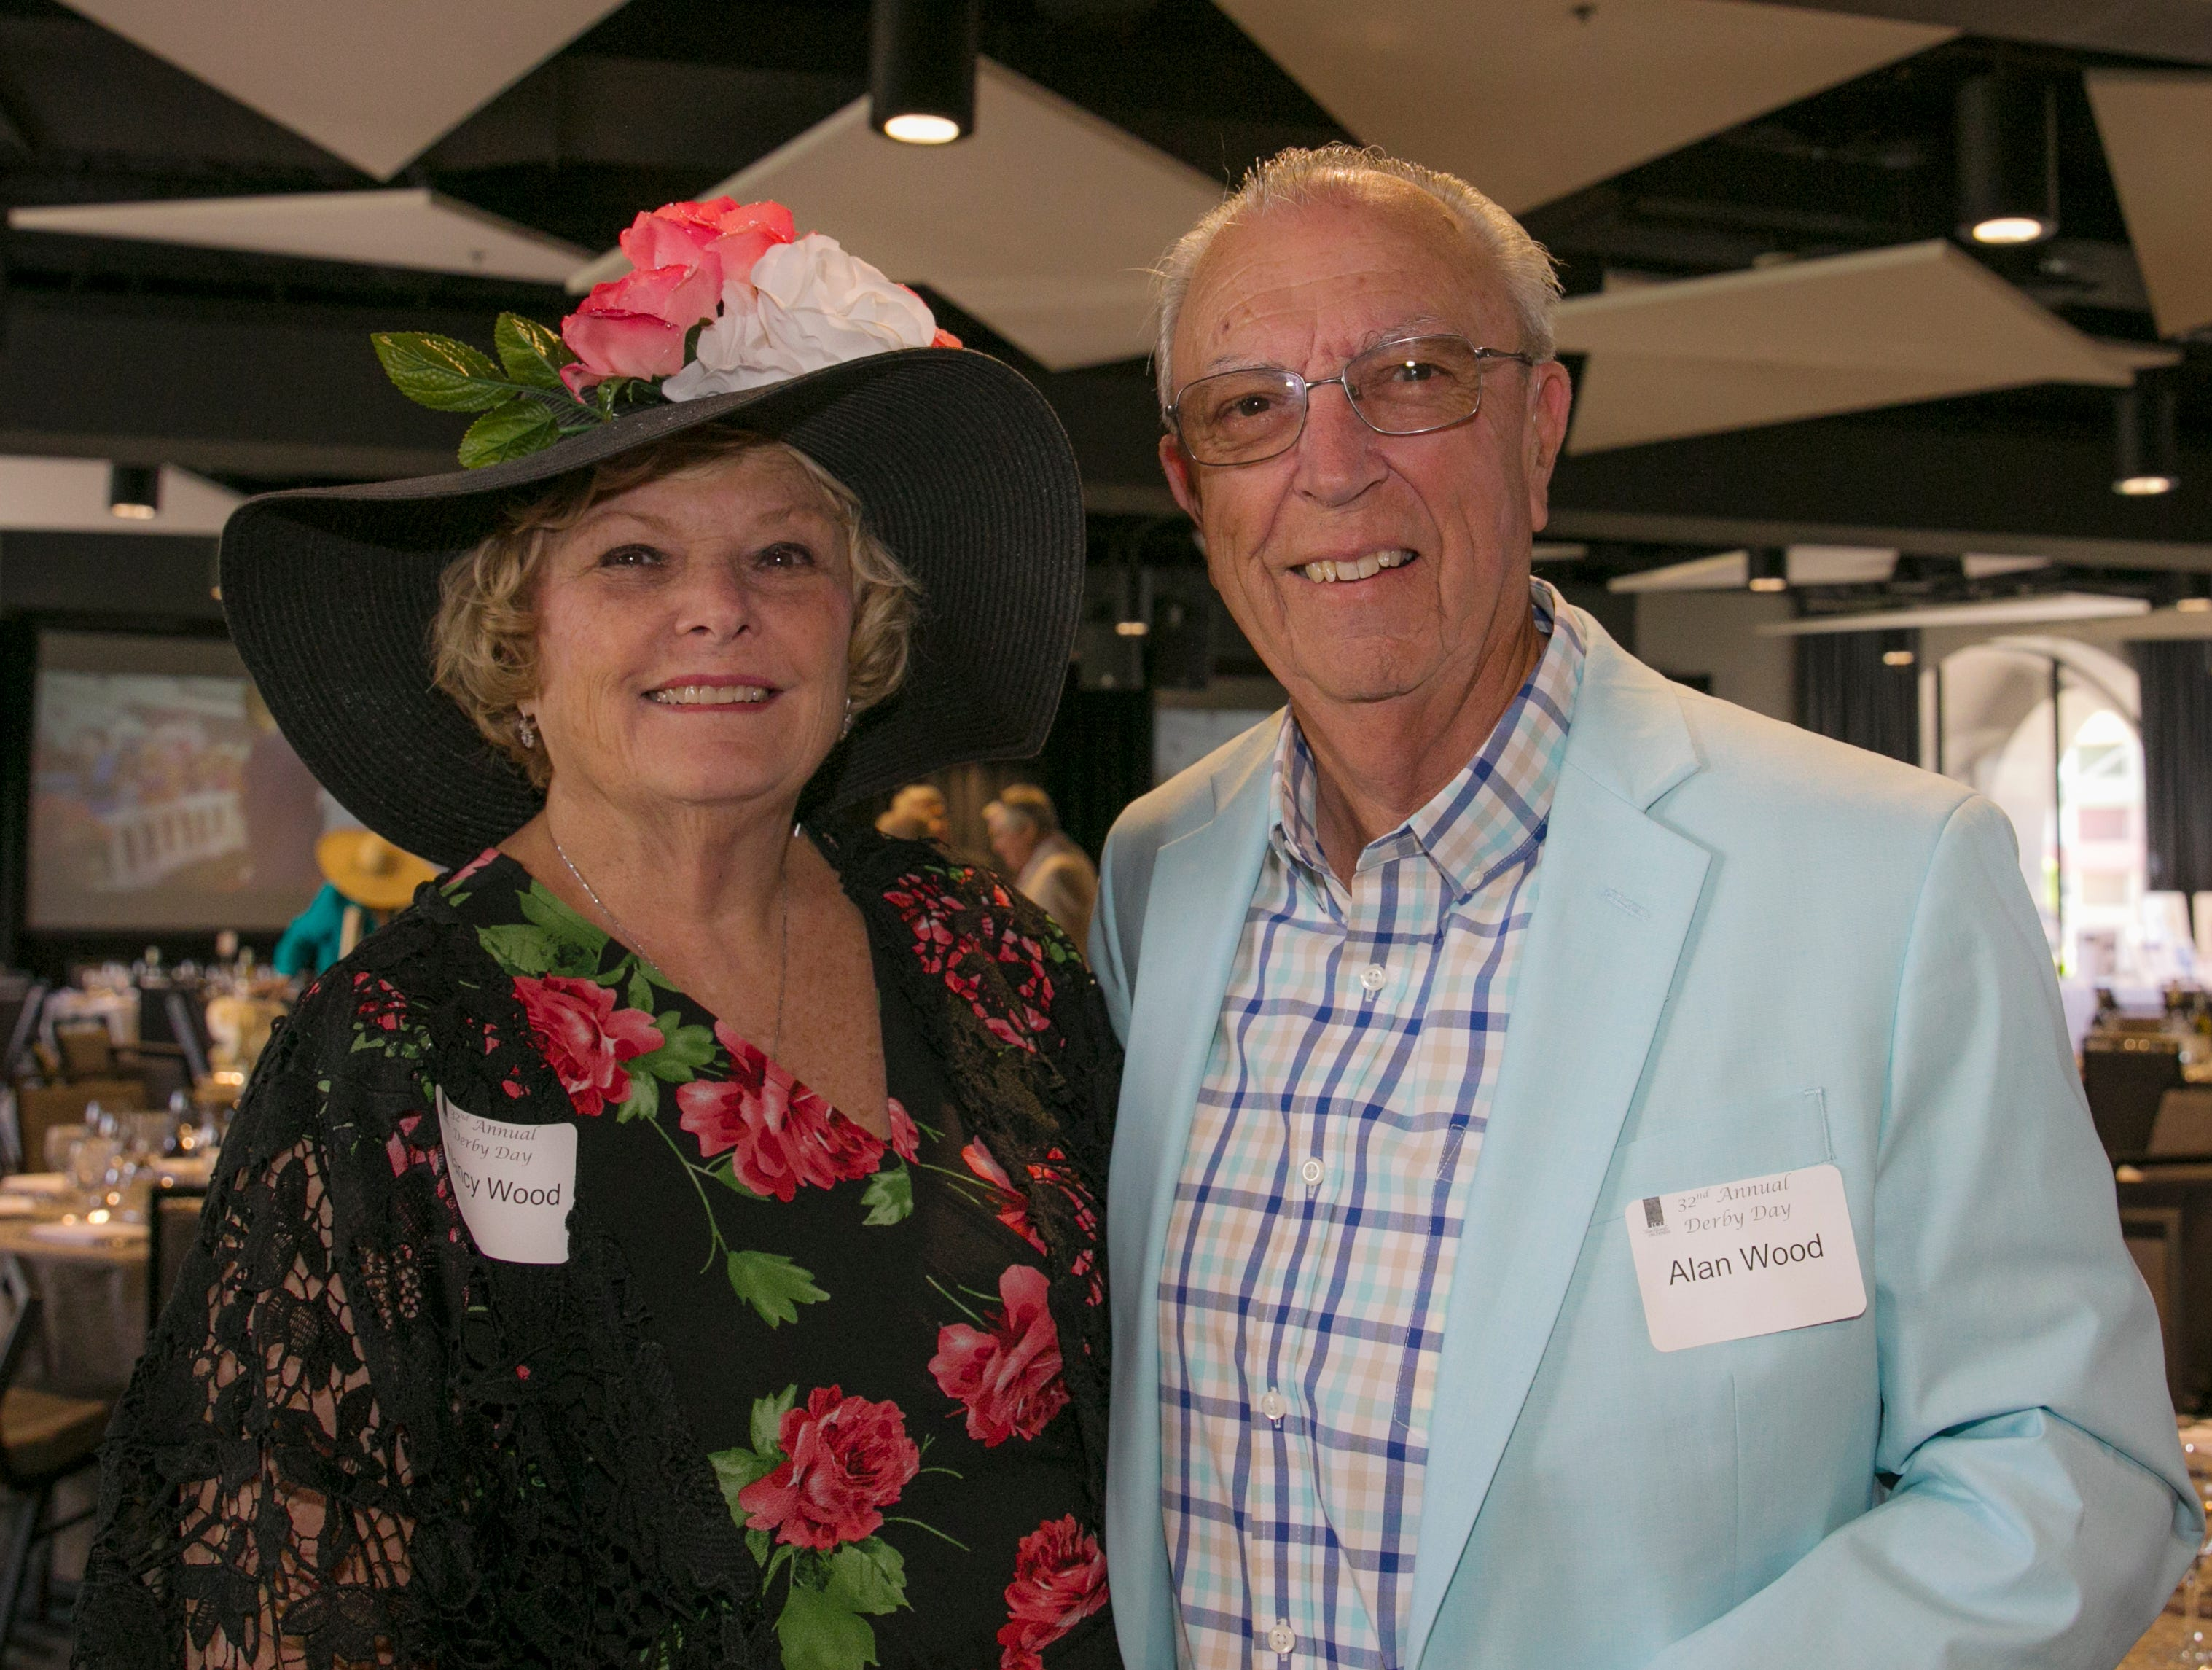 Nancy and Alan Wood during the Derby Day fundraiser for the Reno Chamber Orchestra at the Renaissance Reno on Saturday, May 4, 2019.